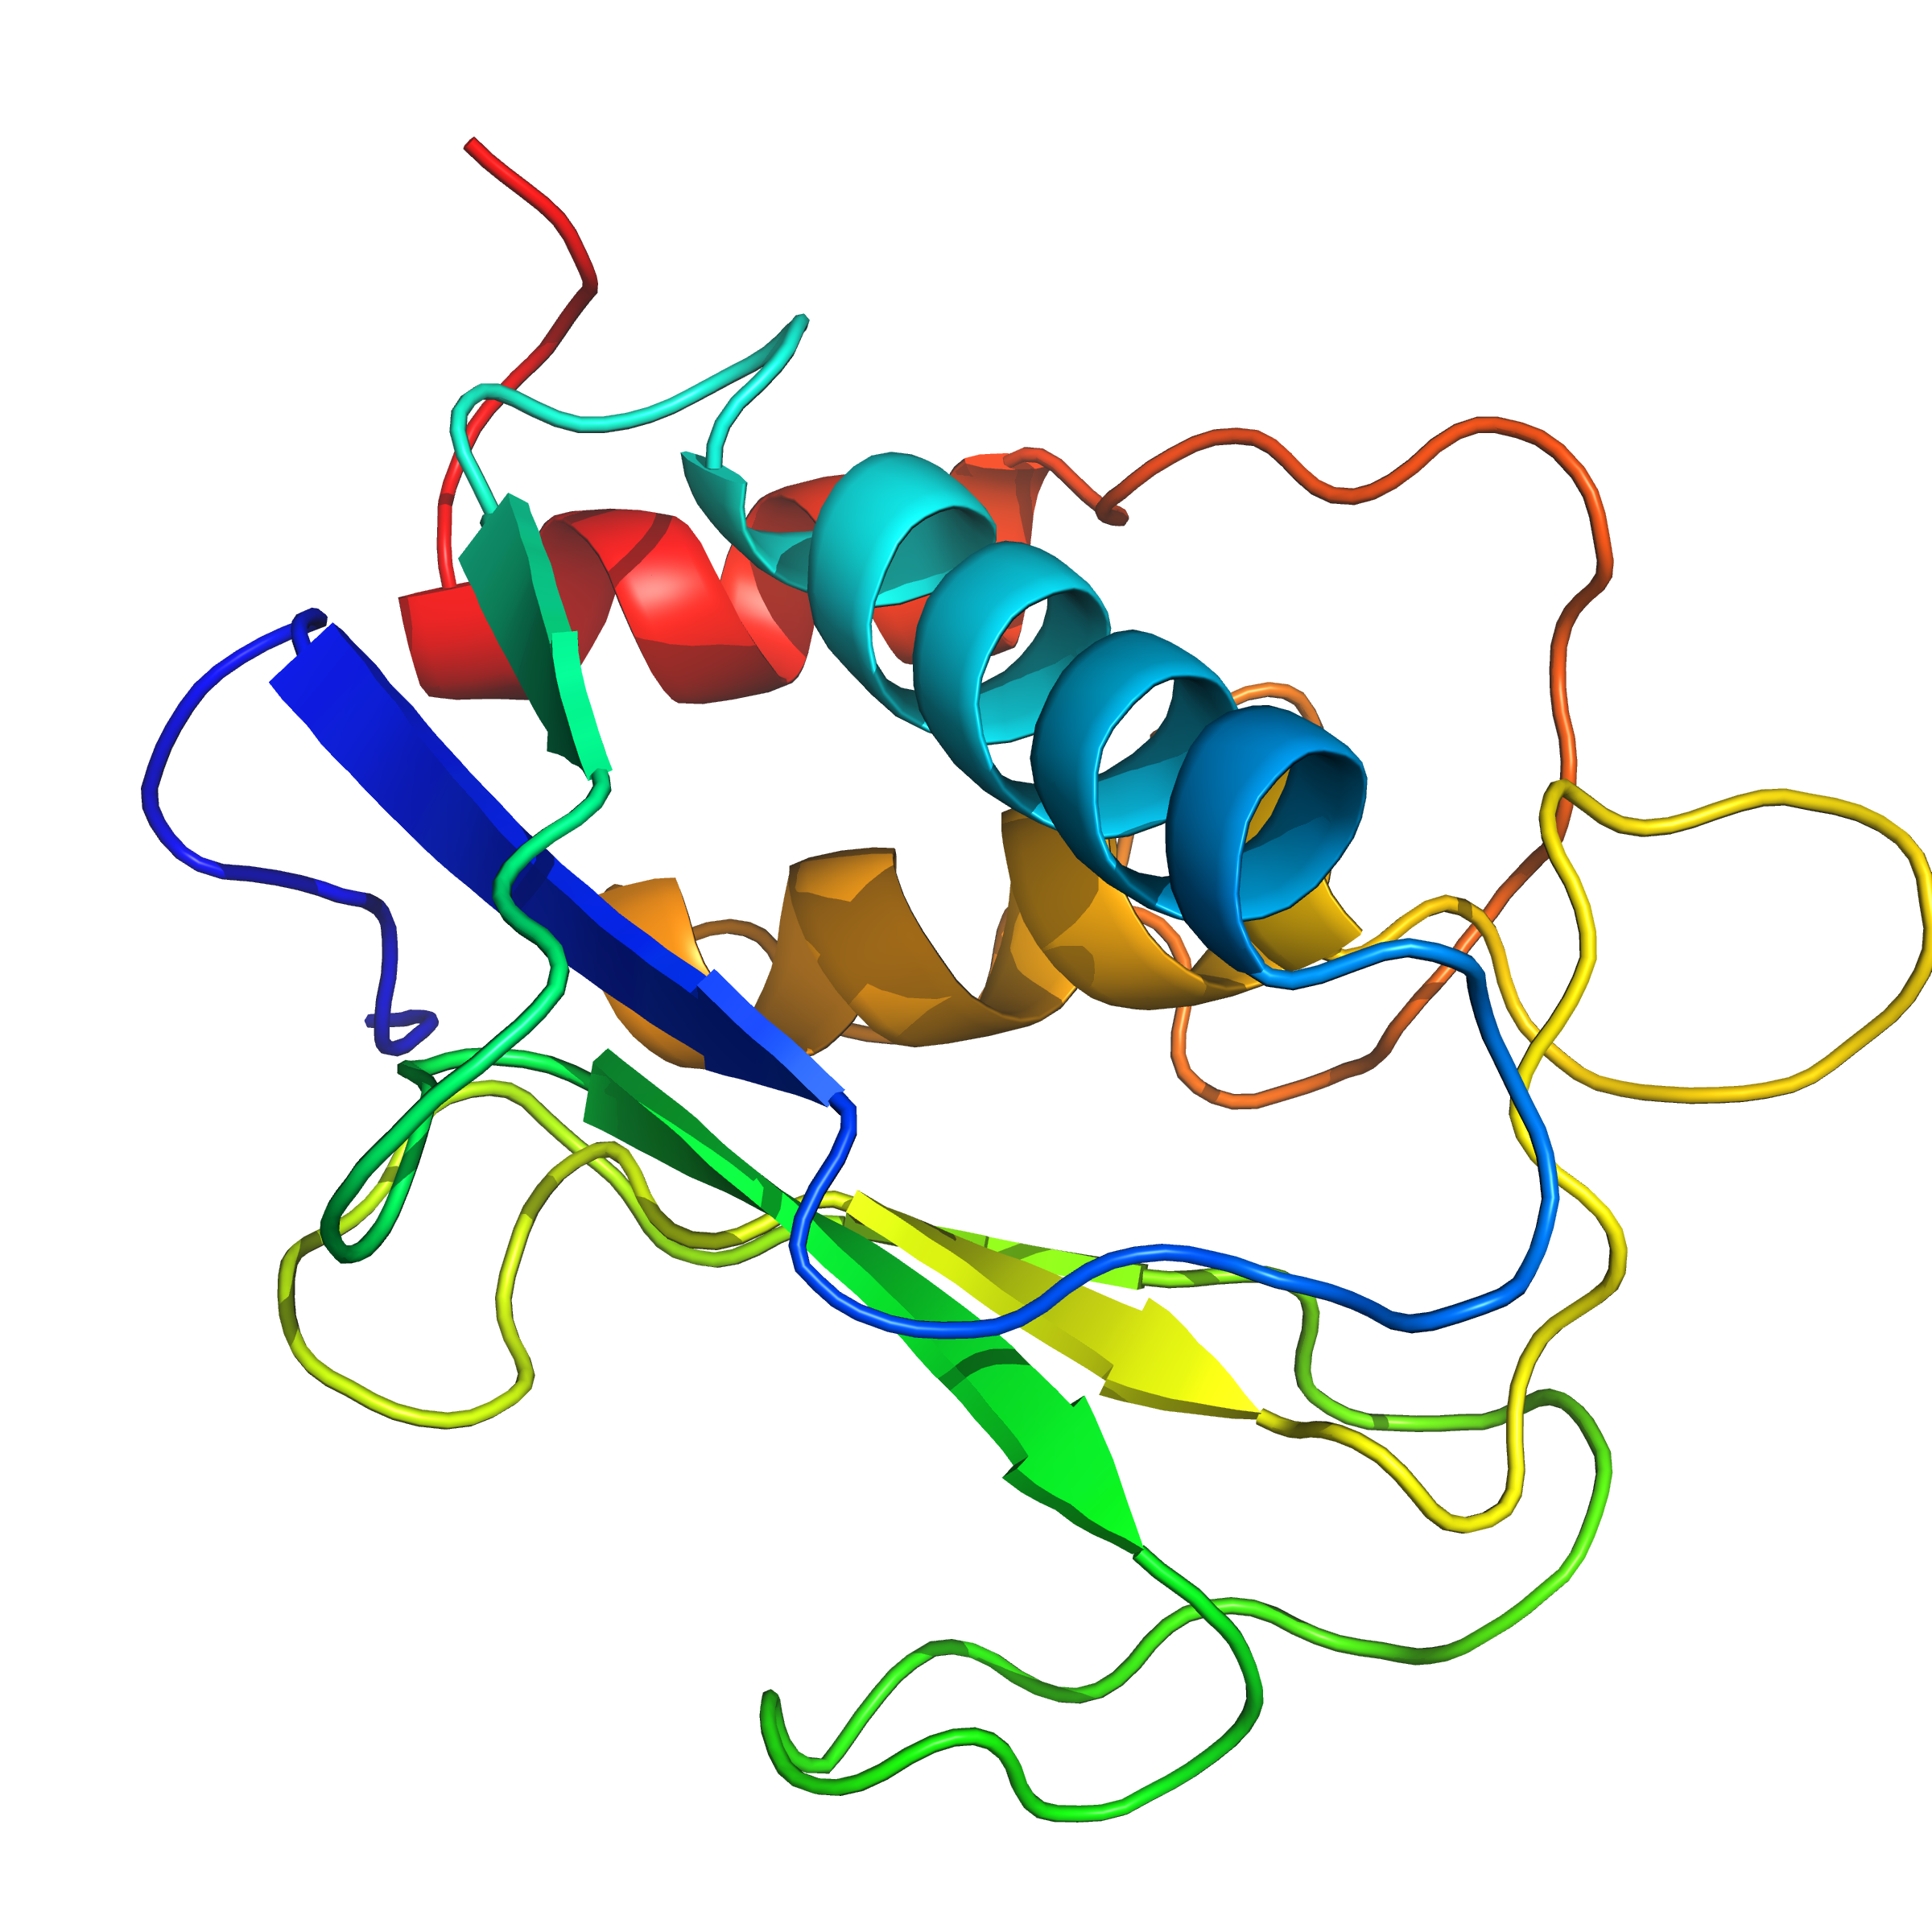 mmp2_cat | recombinant proteins offer